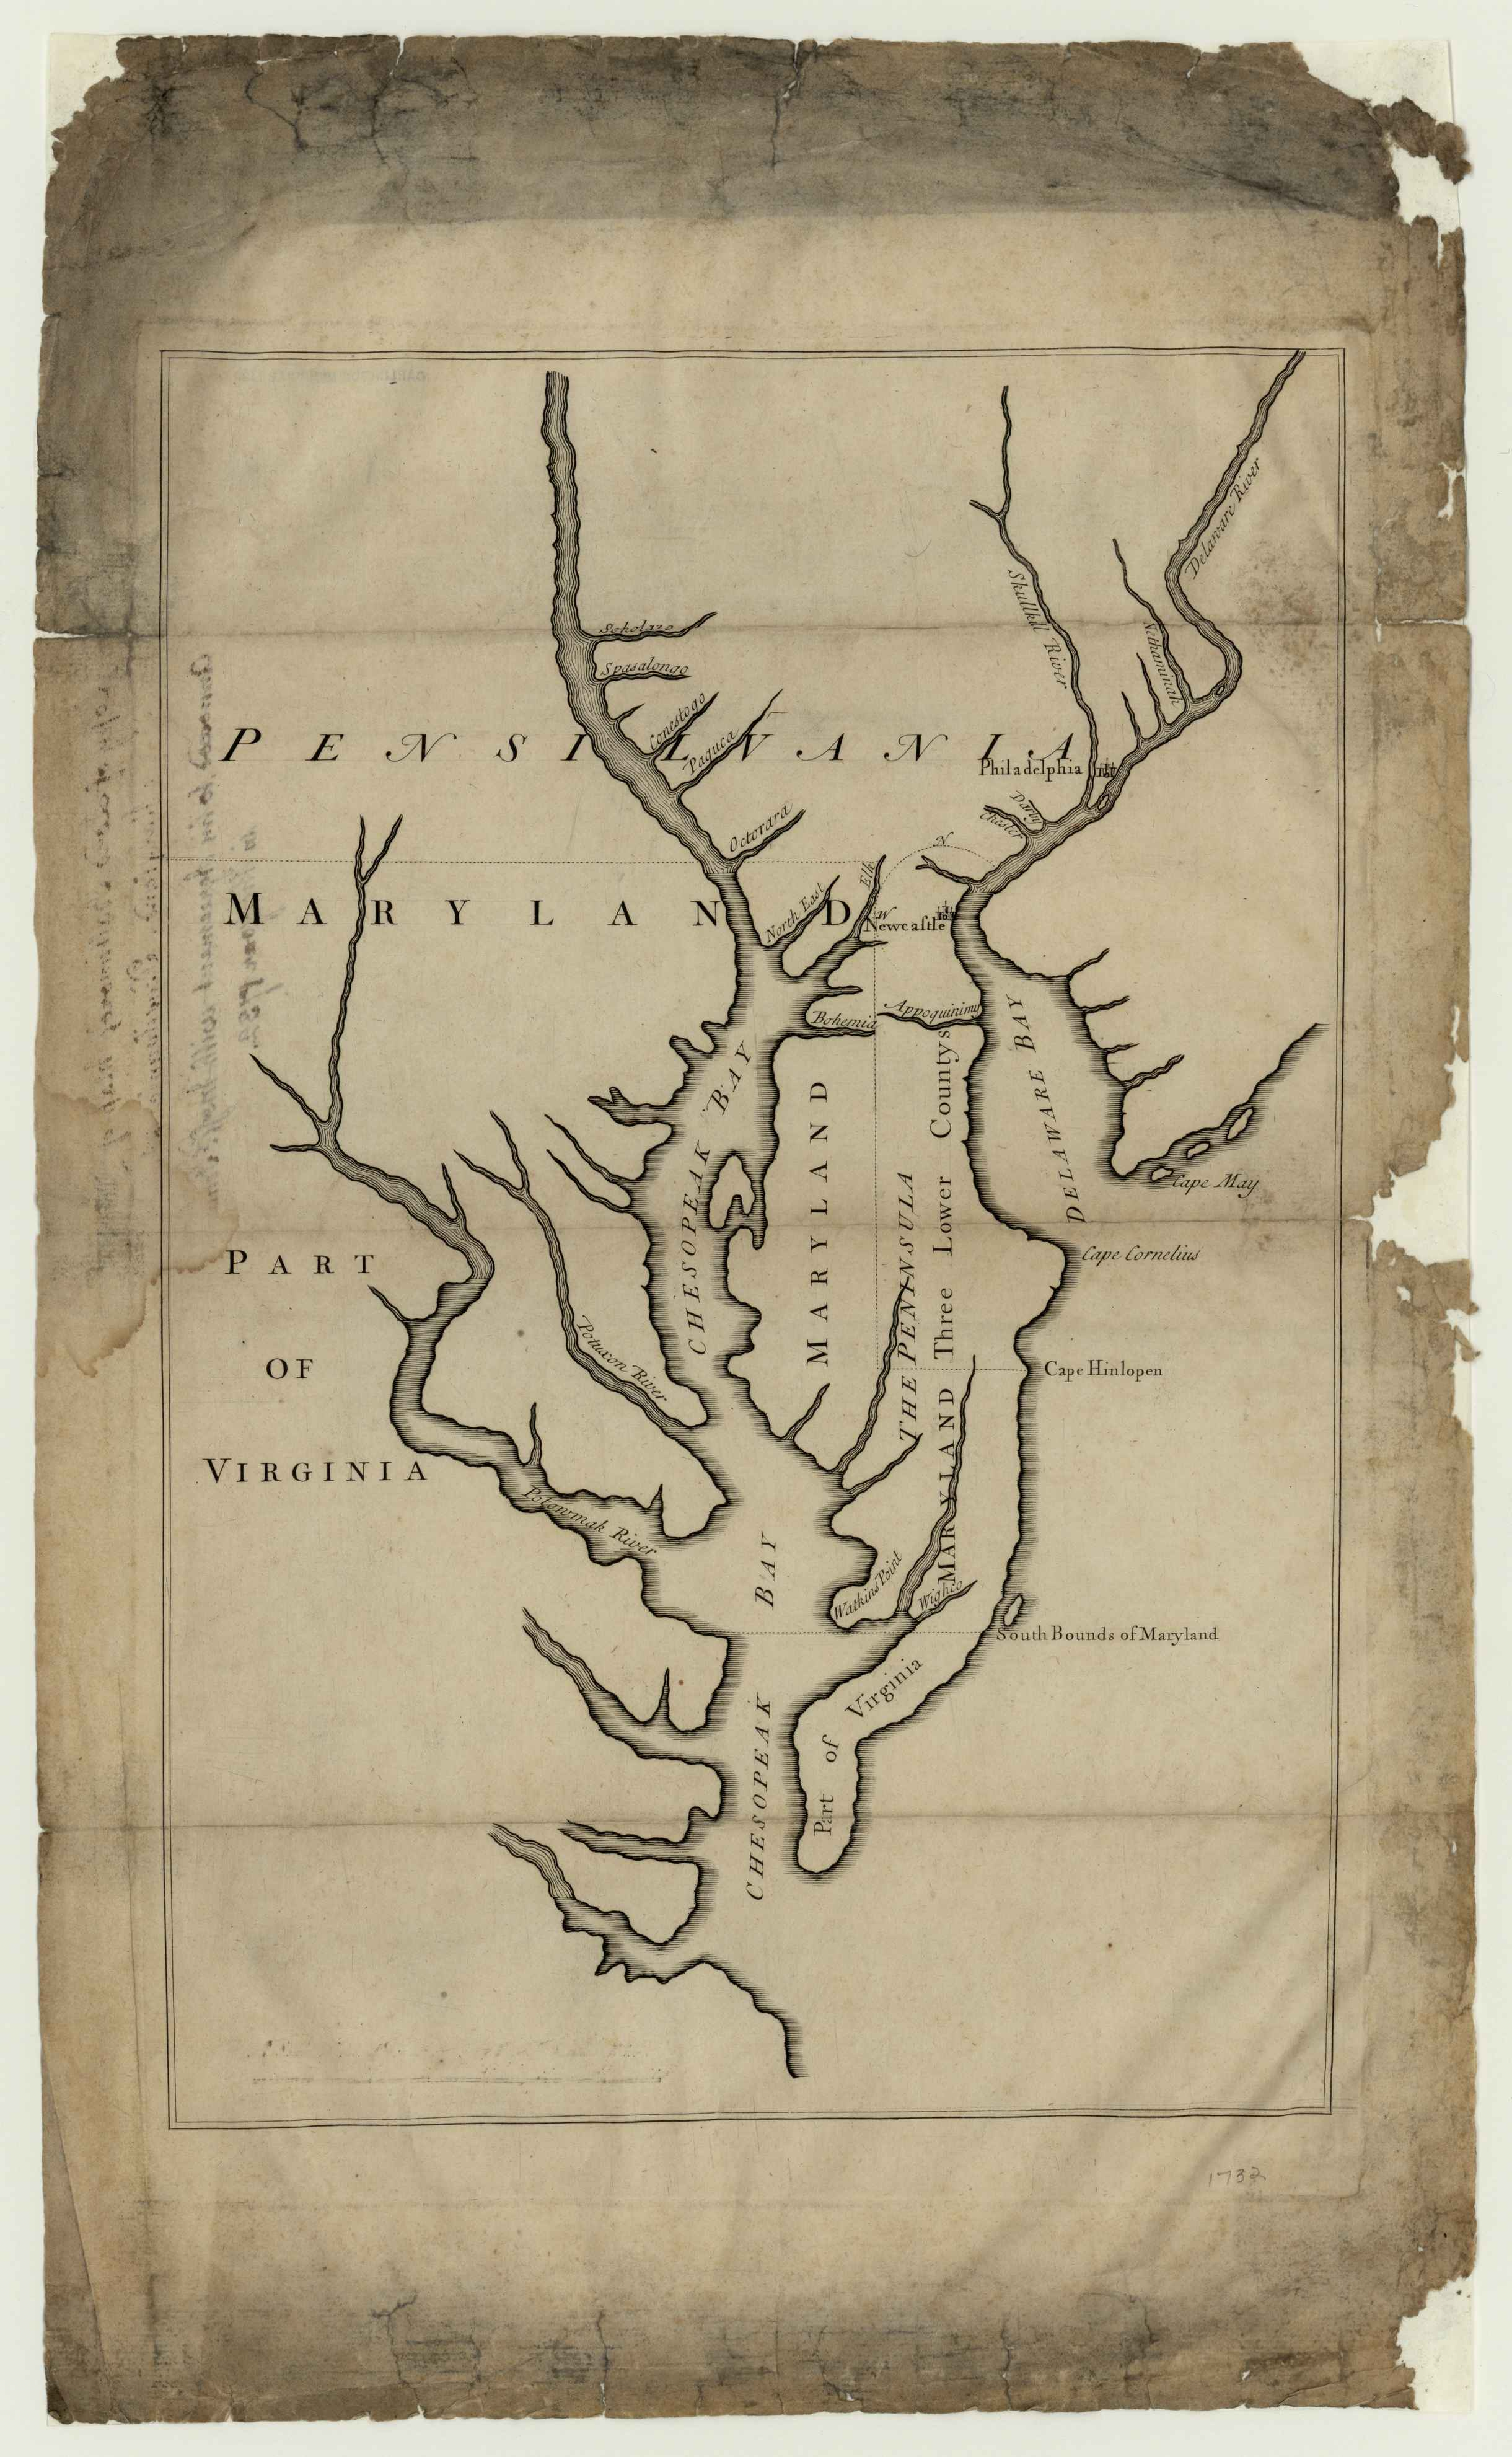 Description Lord Baltimore's map of Maryland, Pennsylvania, etc., annexed to his agreement with Messrs. Penn in the year 1732. Map made to accompany agreement between Lord Baltimore and Messrs. Penn